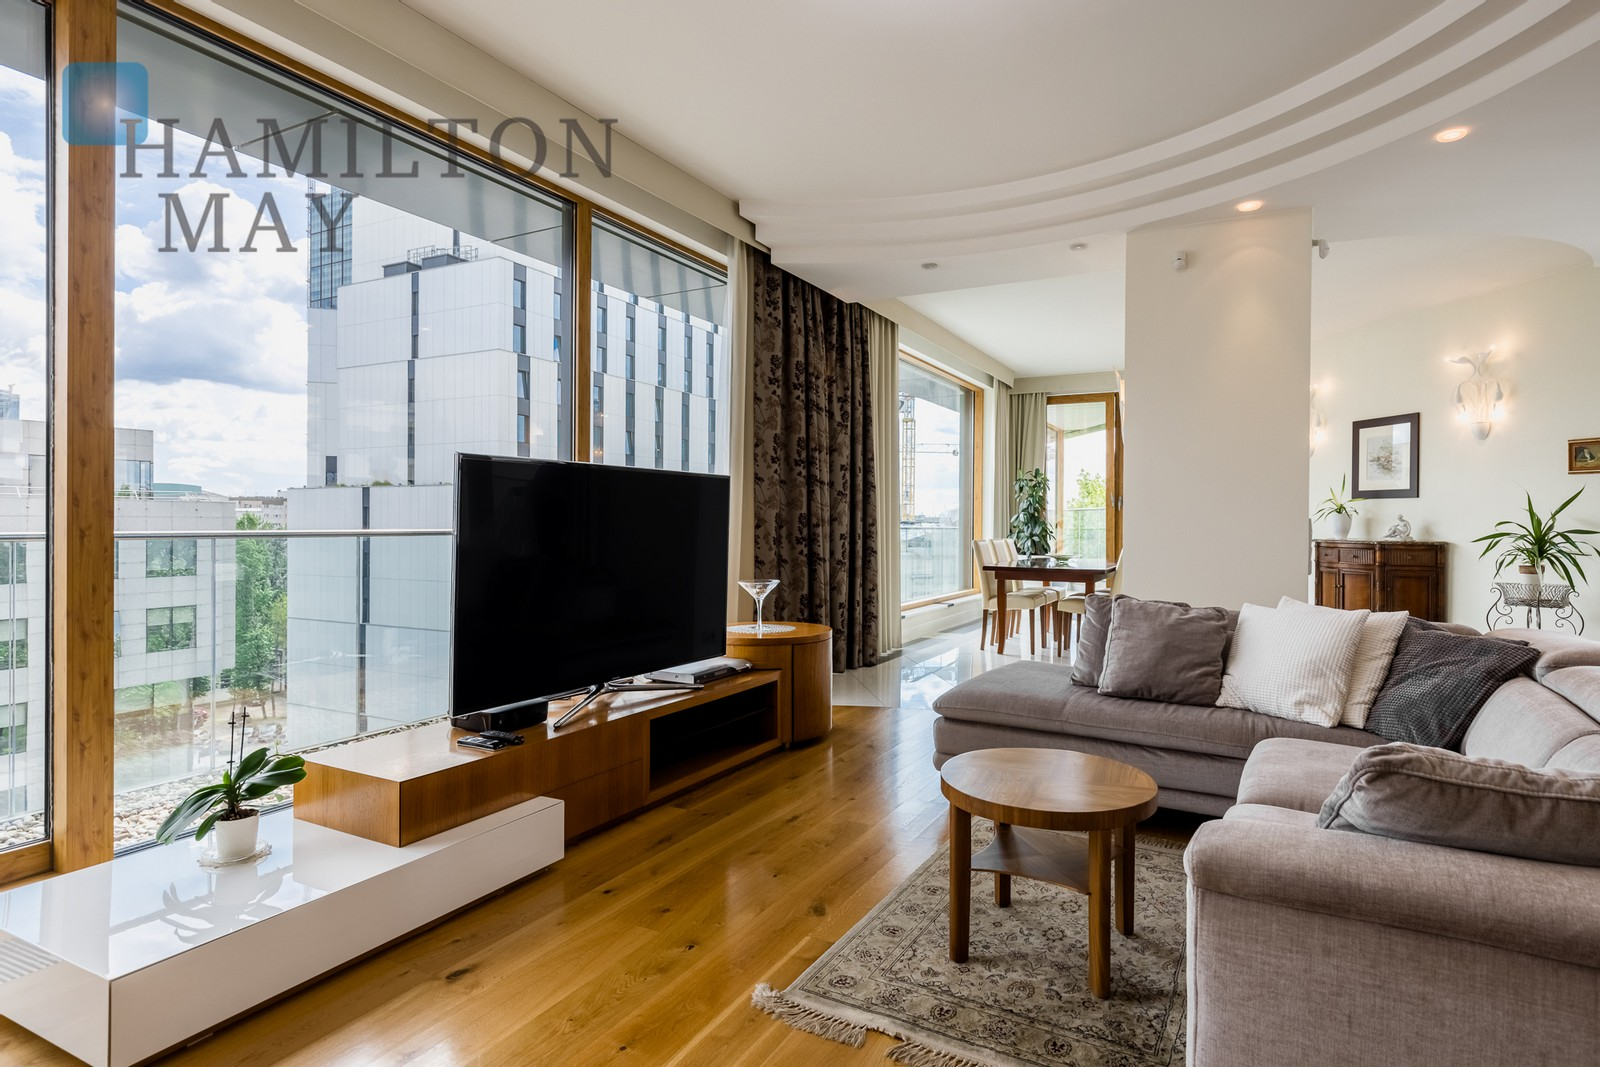 Apartment with a pool and terrace in Villa Karolina Warsaw for sale